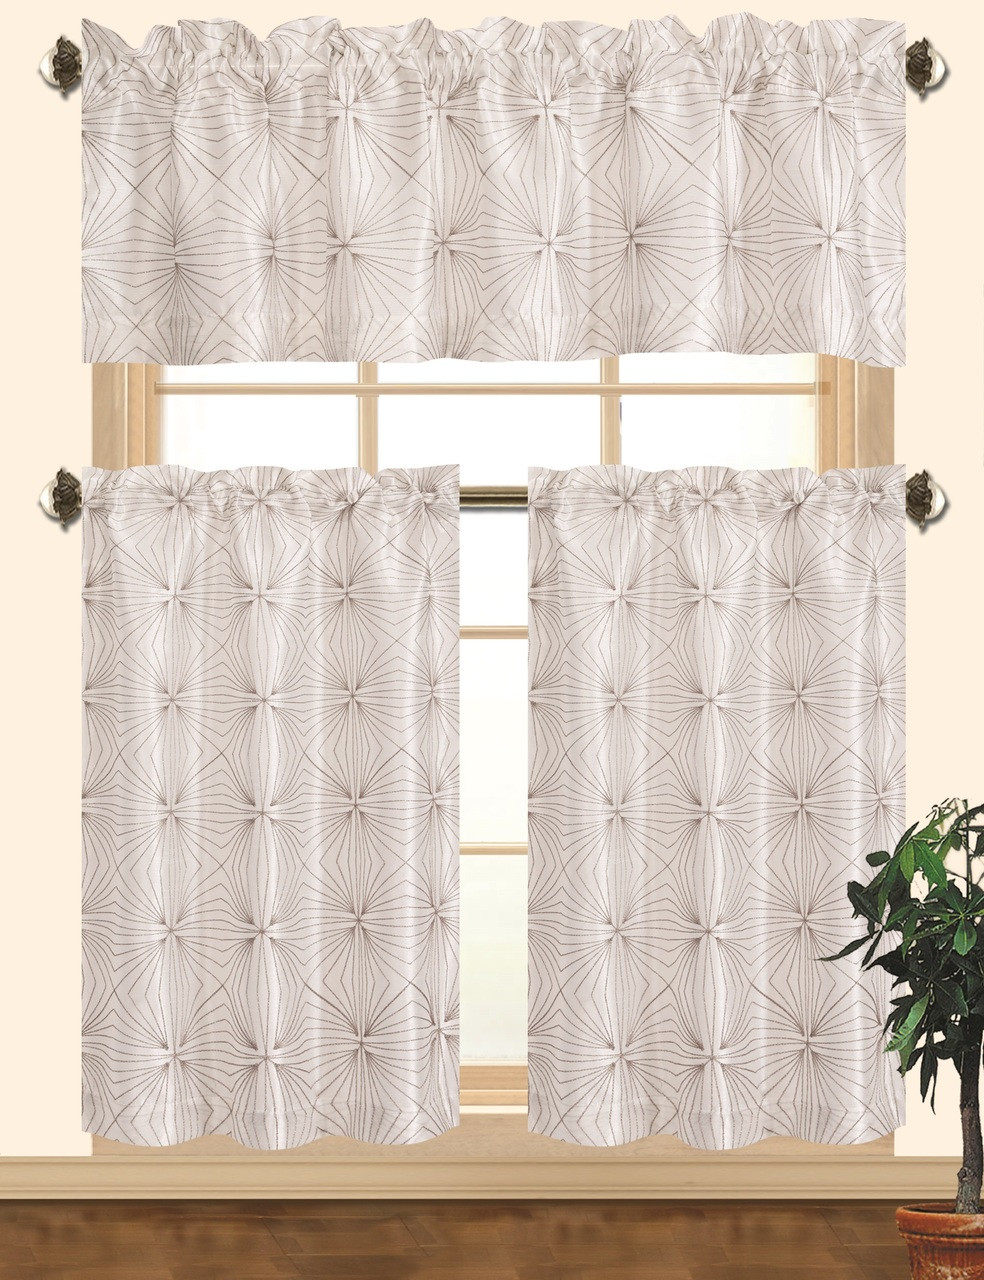 Kashi Home Dana Kitchen Curtain Set, Decorative Faux Silk 3pc Rod Pocket  Valance & Panels with Geometric Embroidery Design